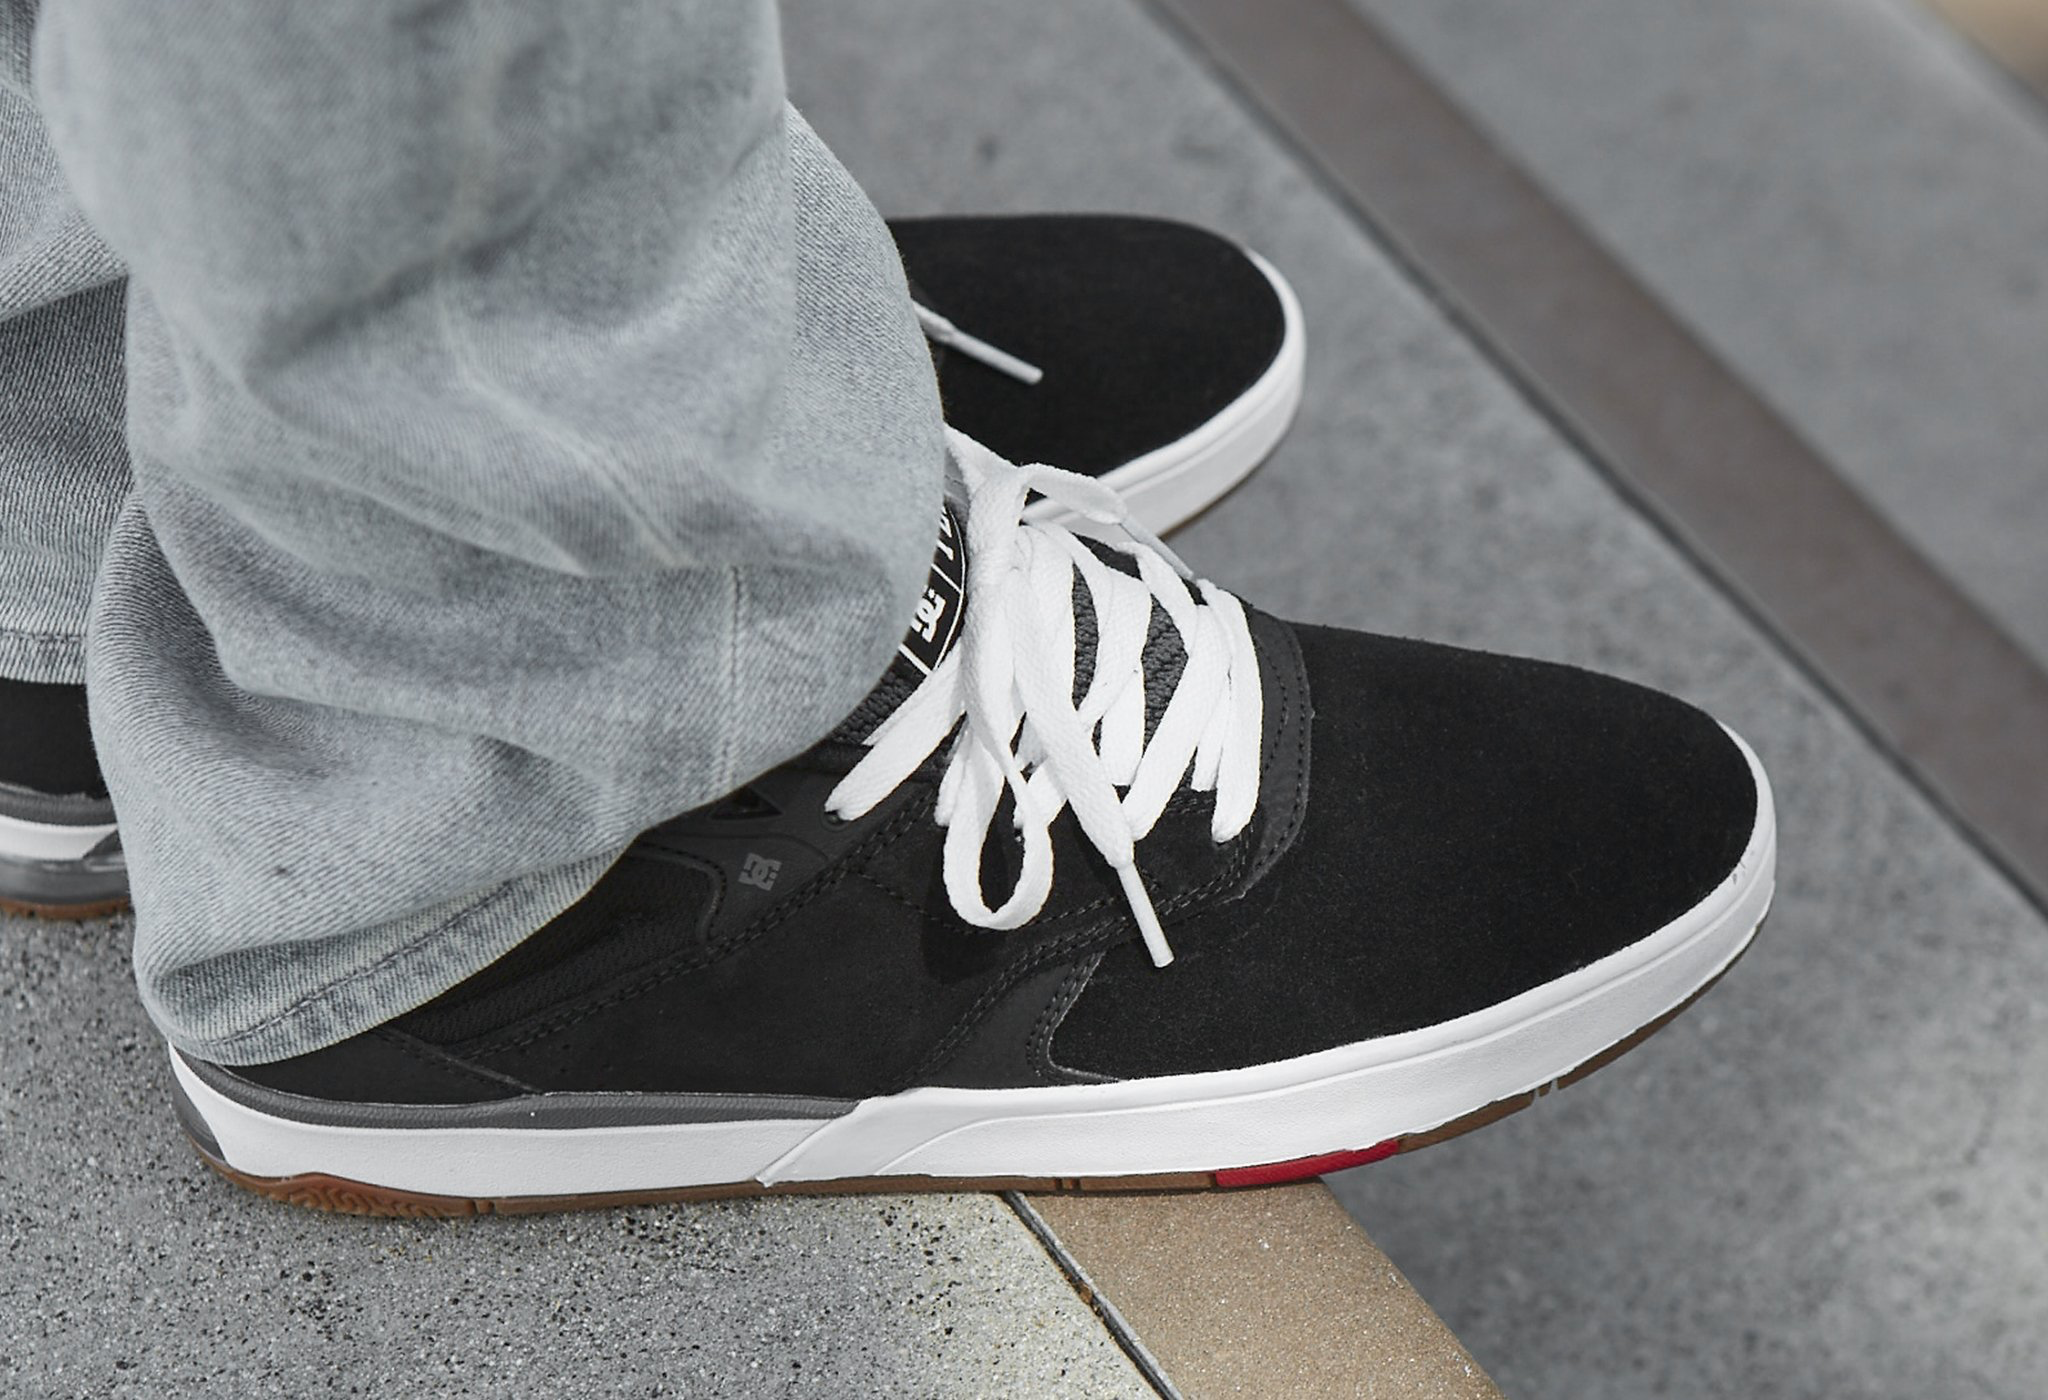 a20dfd8eabf DC s Got yours yet  What s the hold up ! The Tiago Lemos pro model is  available now at your local skate shop and dcshoes.com thetiago.